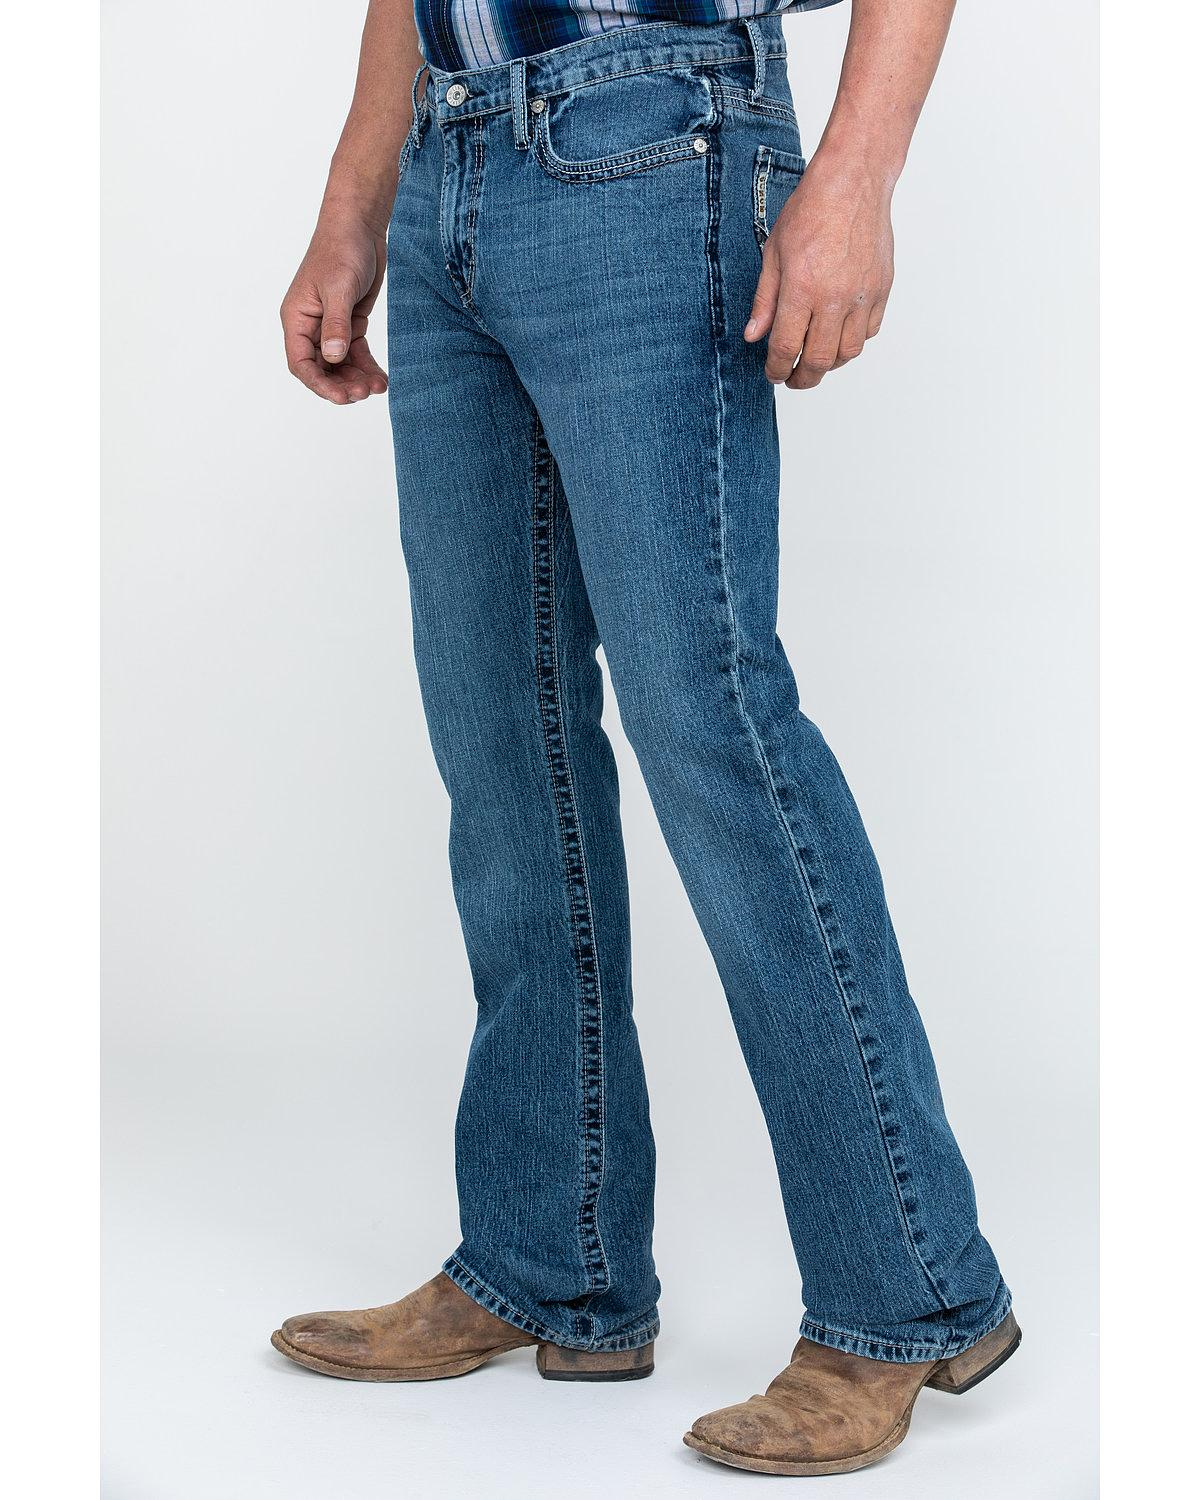 92a75fa4a19 Cinch Men's Ian Medium Stonewash Slim Boot Jeans - MB67336001 | eBay